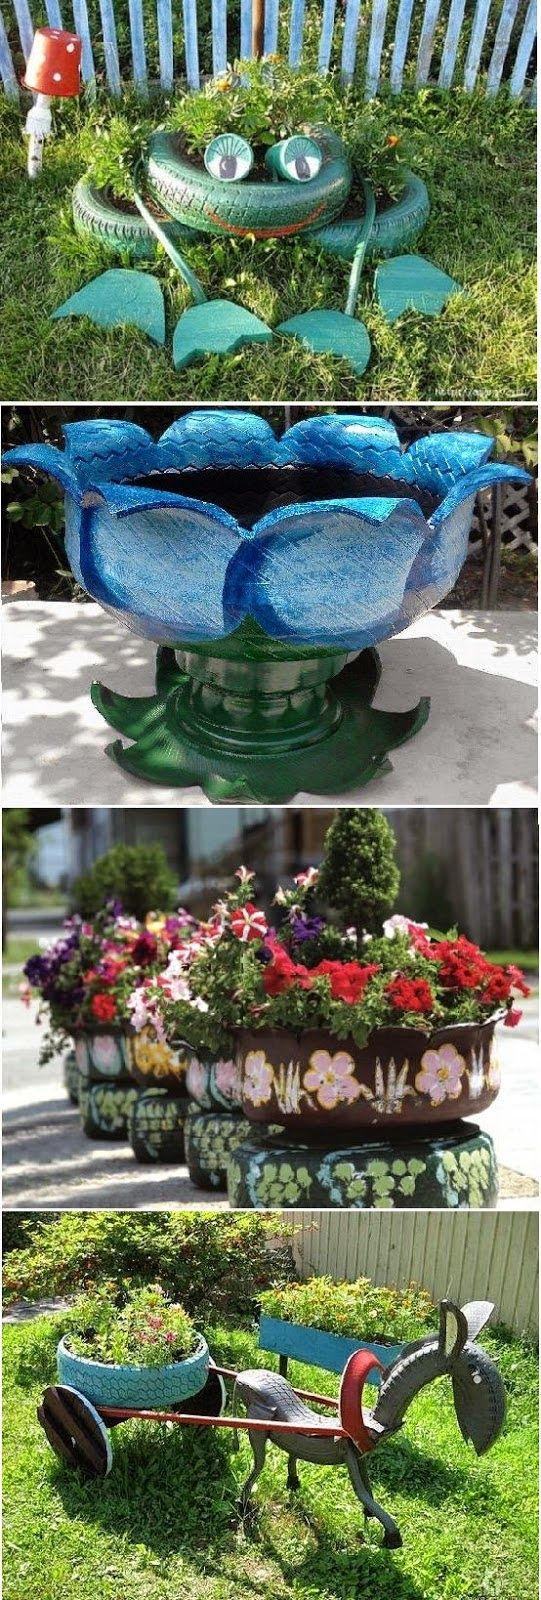 17 Best images about Garden decoration ideas on Pinterest